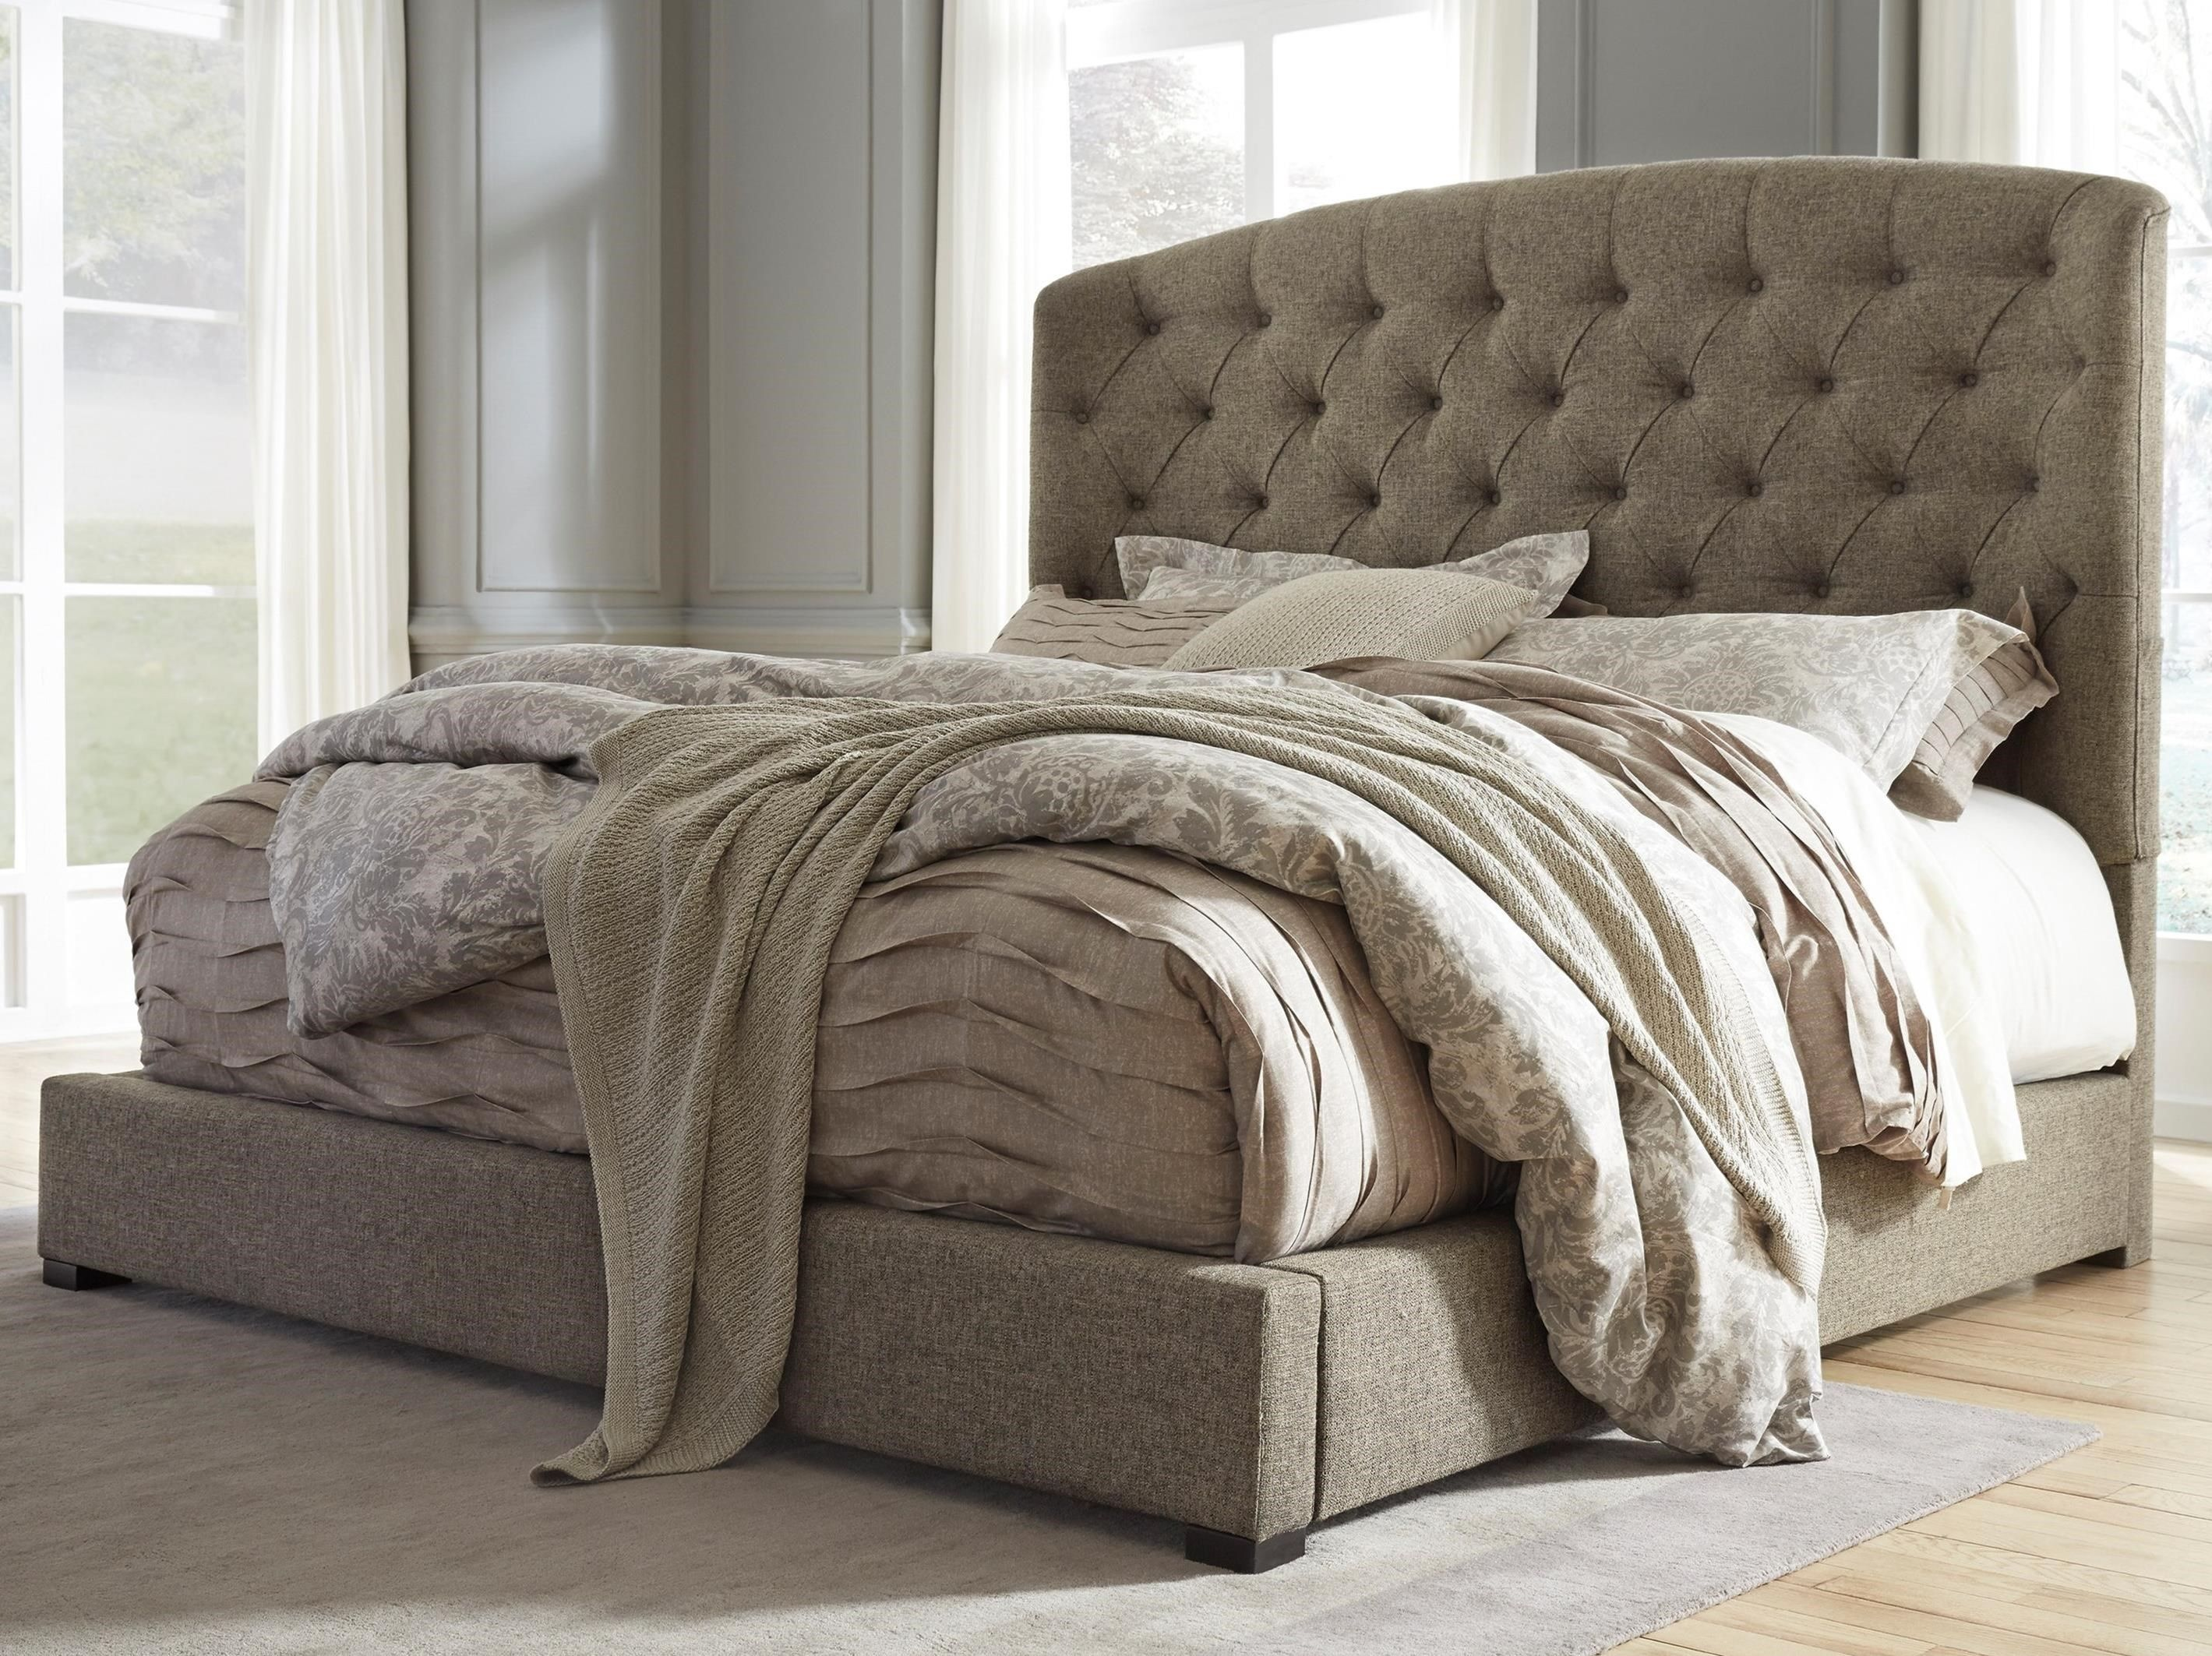 Signature Design By Ashley Gerlane King Upholstered Bed